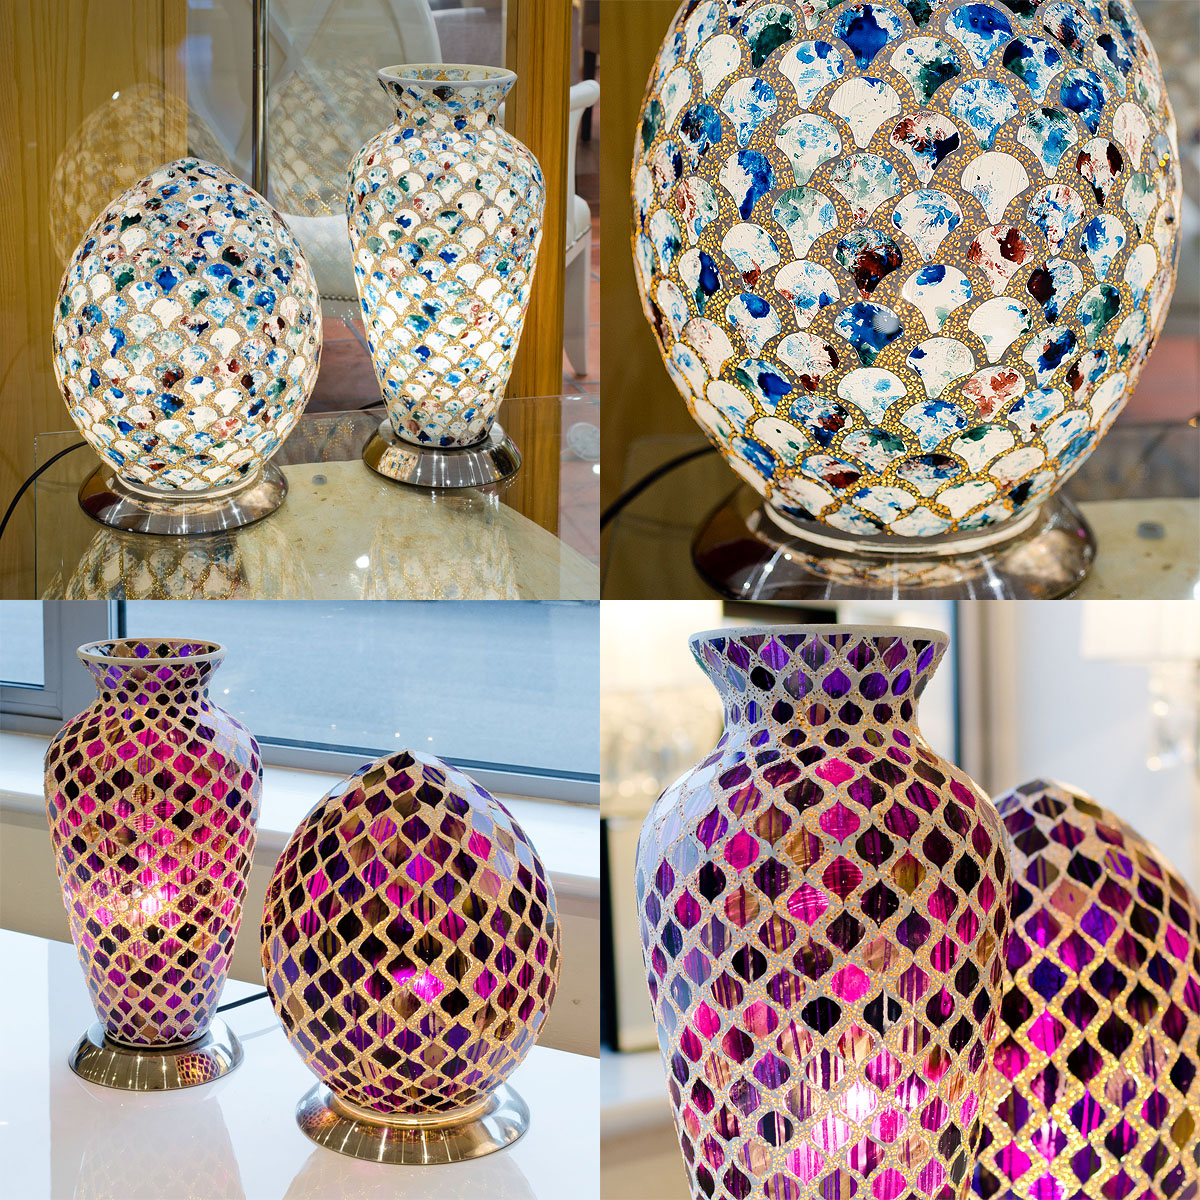 We have recieved samples of our new range of egg and vase shaped mosaic glass lighting, coming soon.